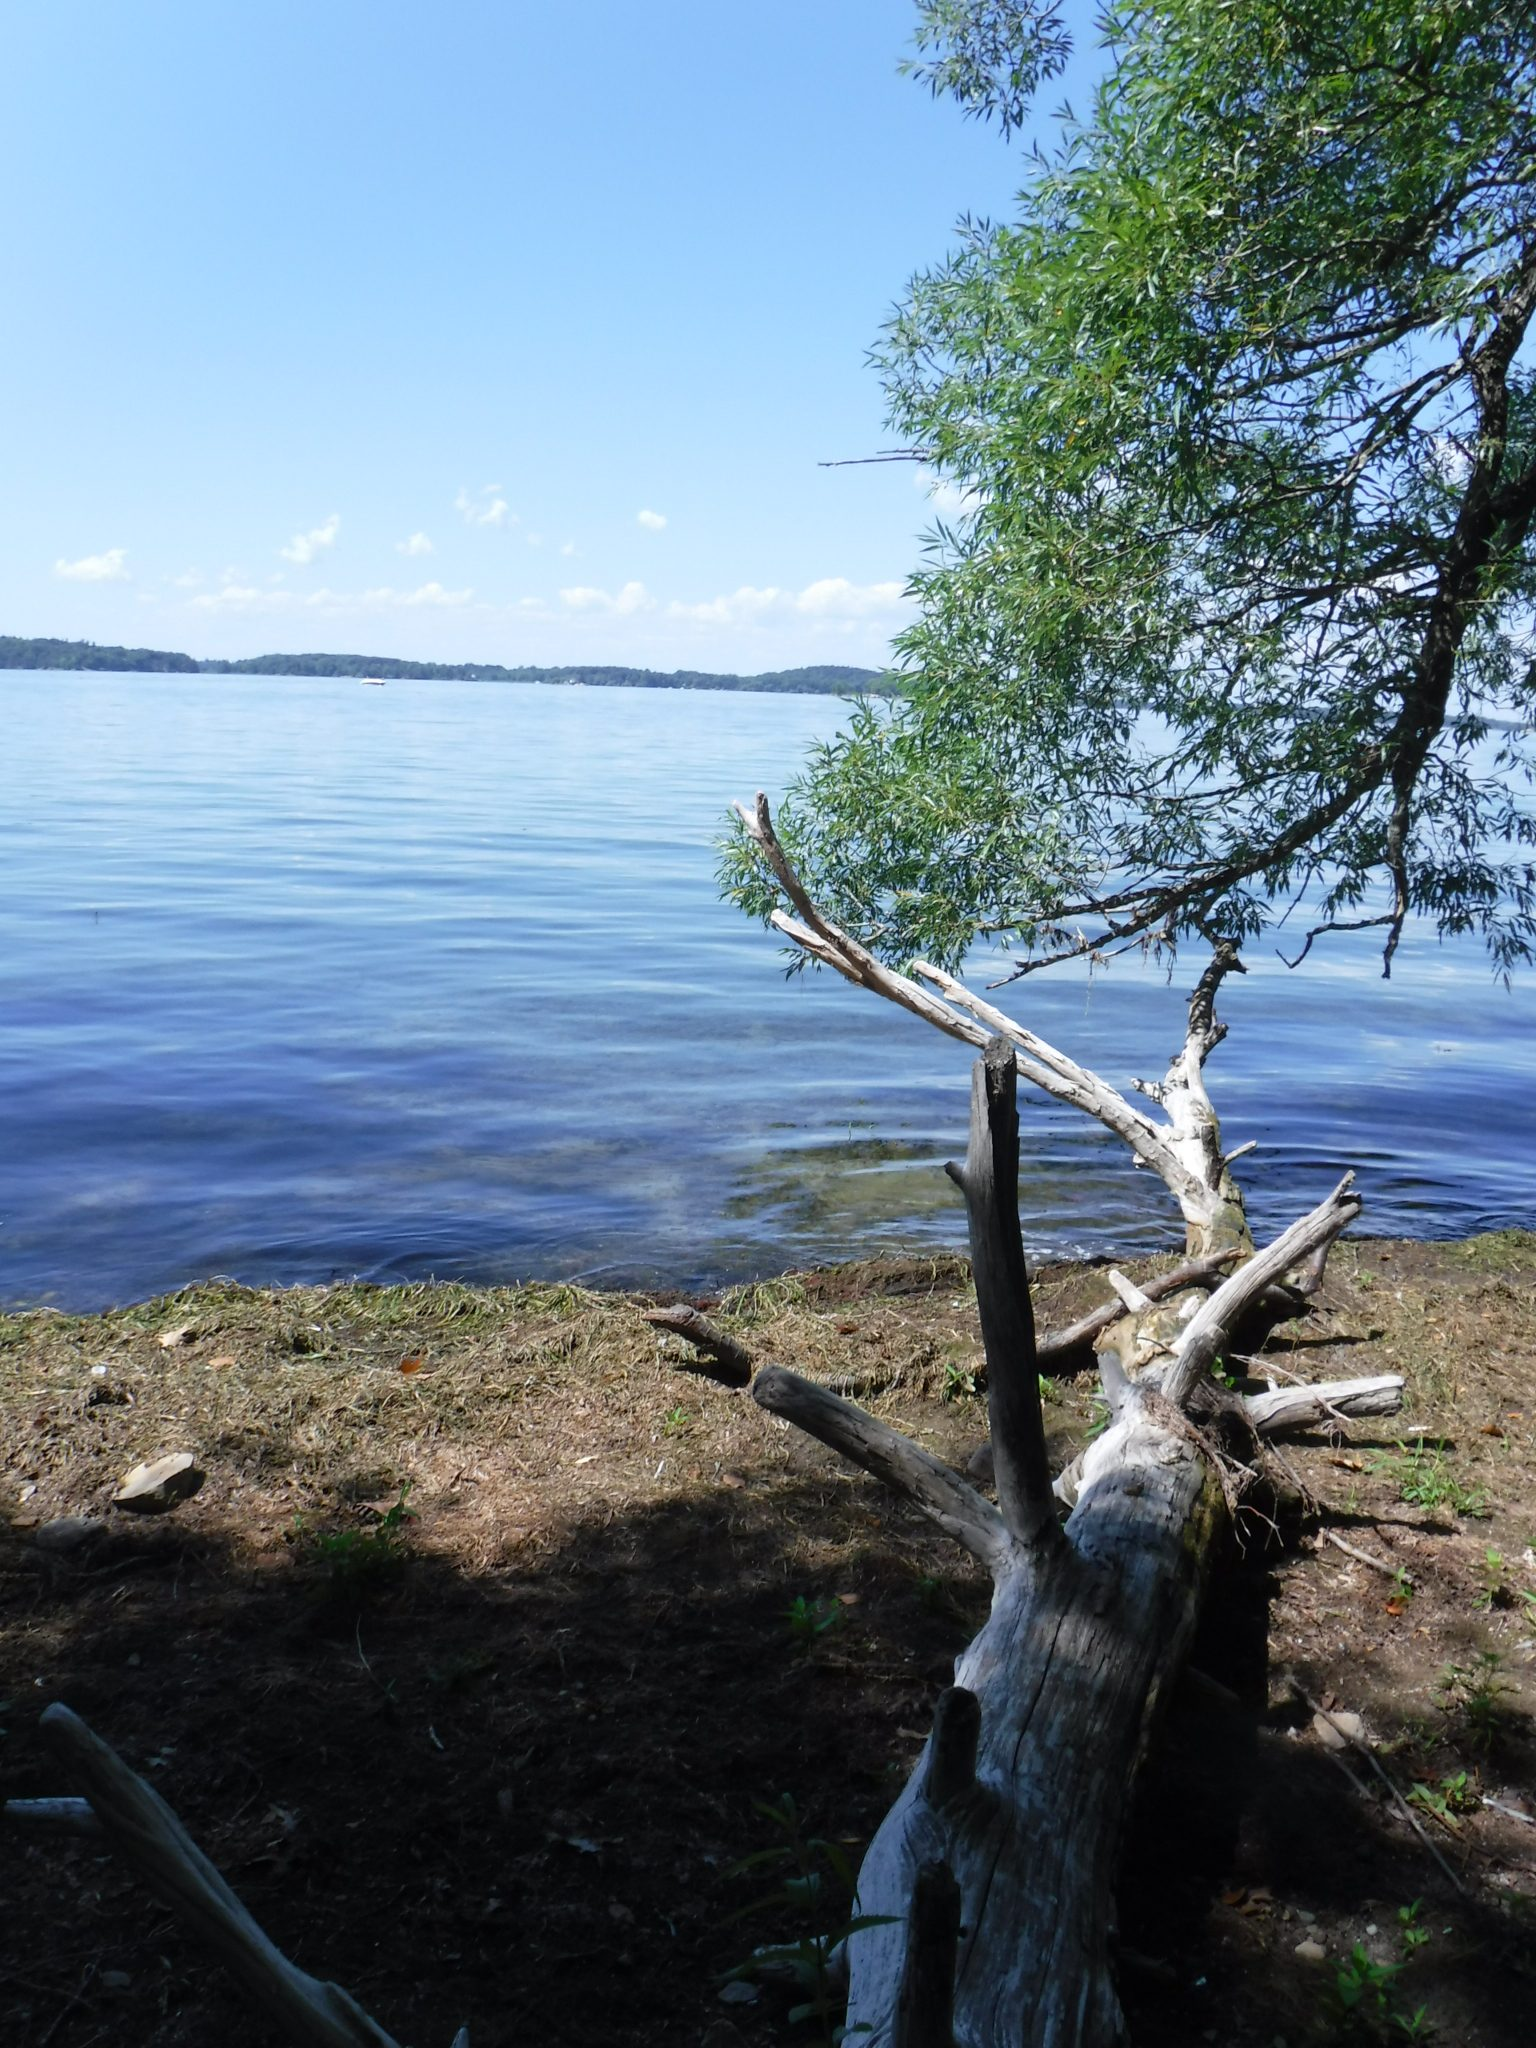 Wellesley Island State Park: The park is located in the Thousand Islands region of New York in the middle of the Saint Lawrence River.